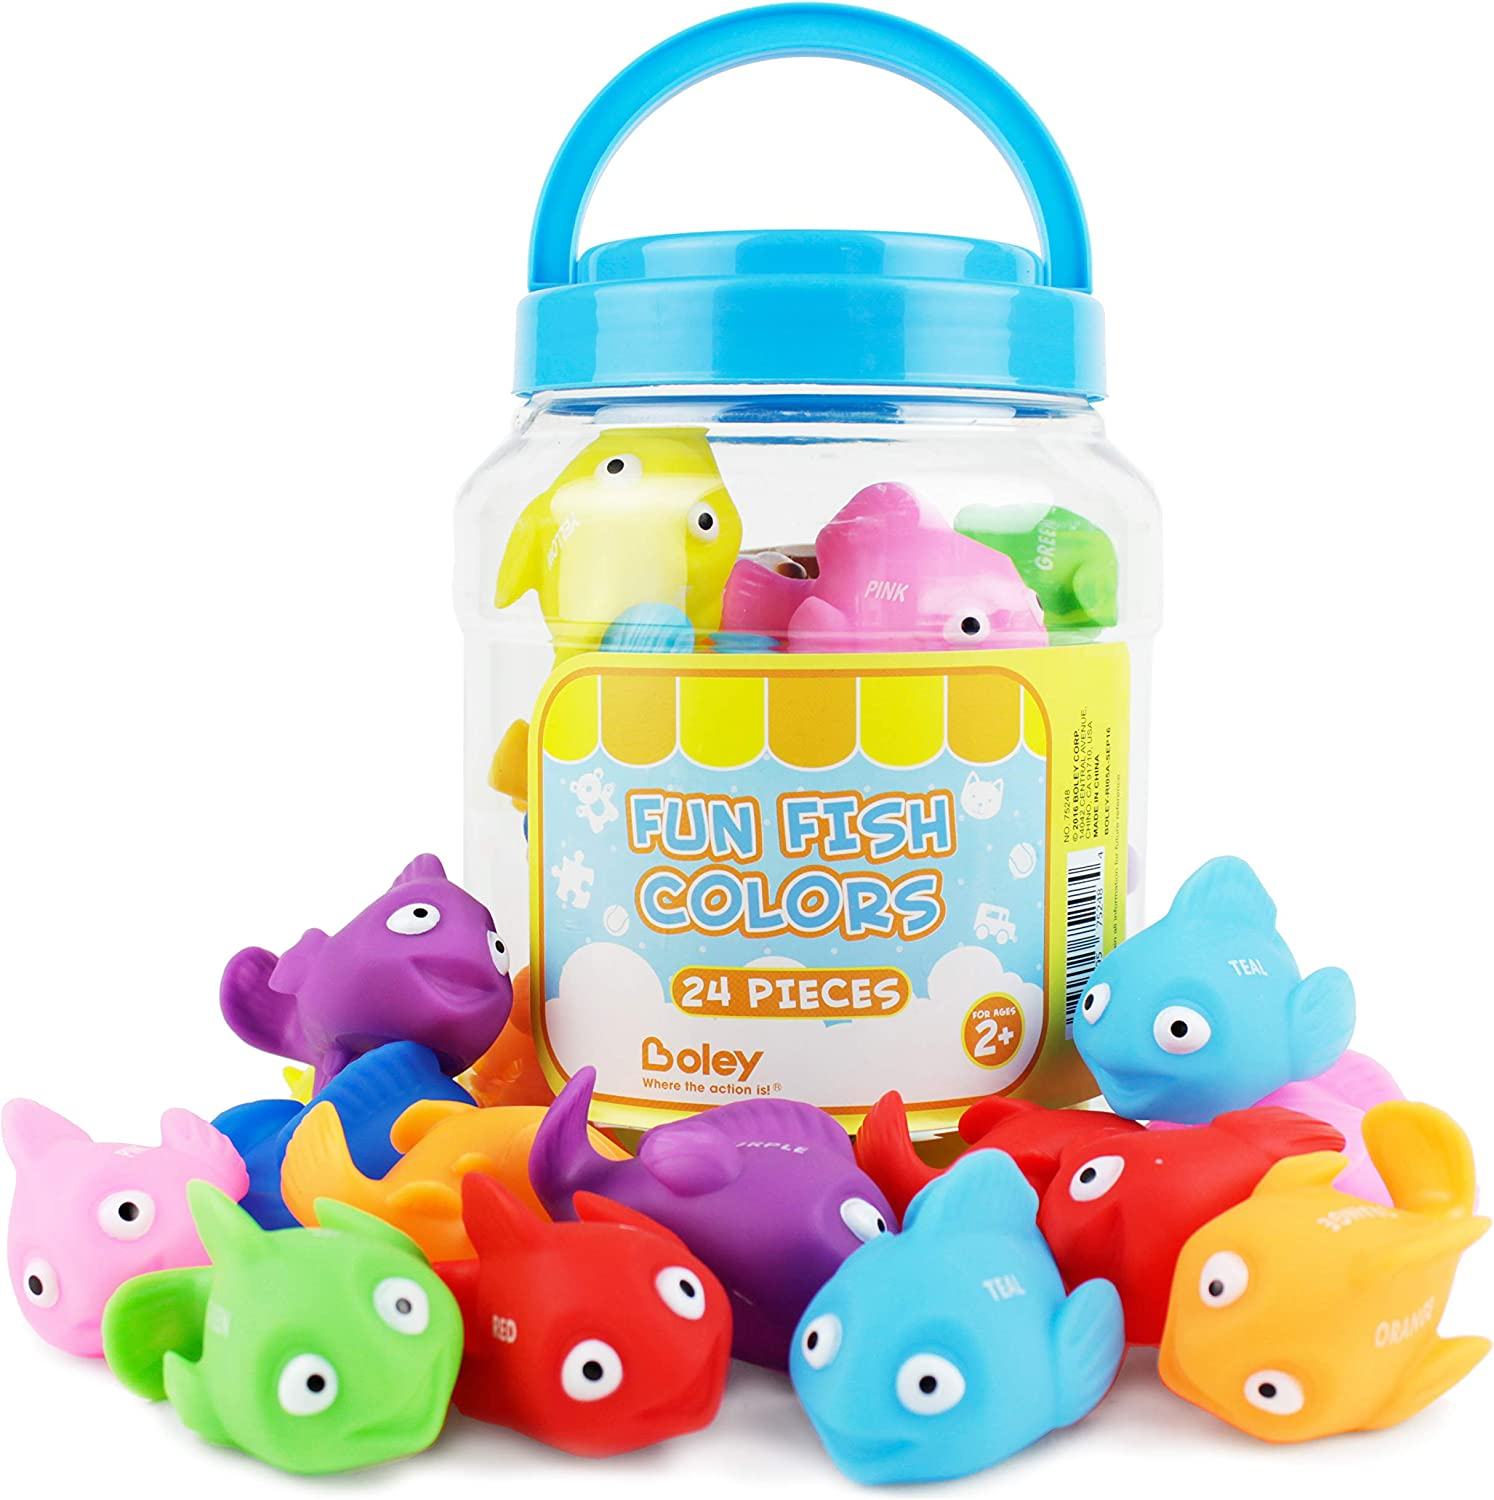 Boley Catch The Fish Bathtub Toys 4 Pack Small Light Up Sea Animal Kids Bath Toys for Ages 6 and Up